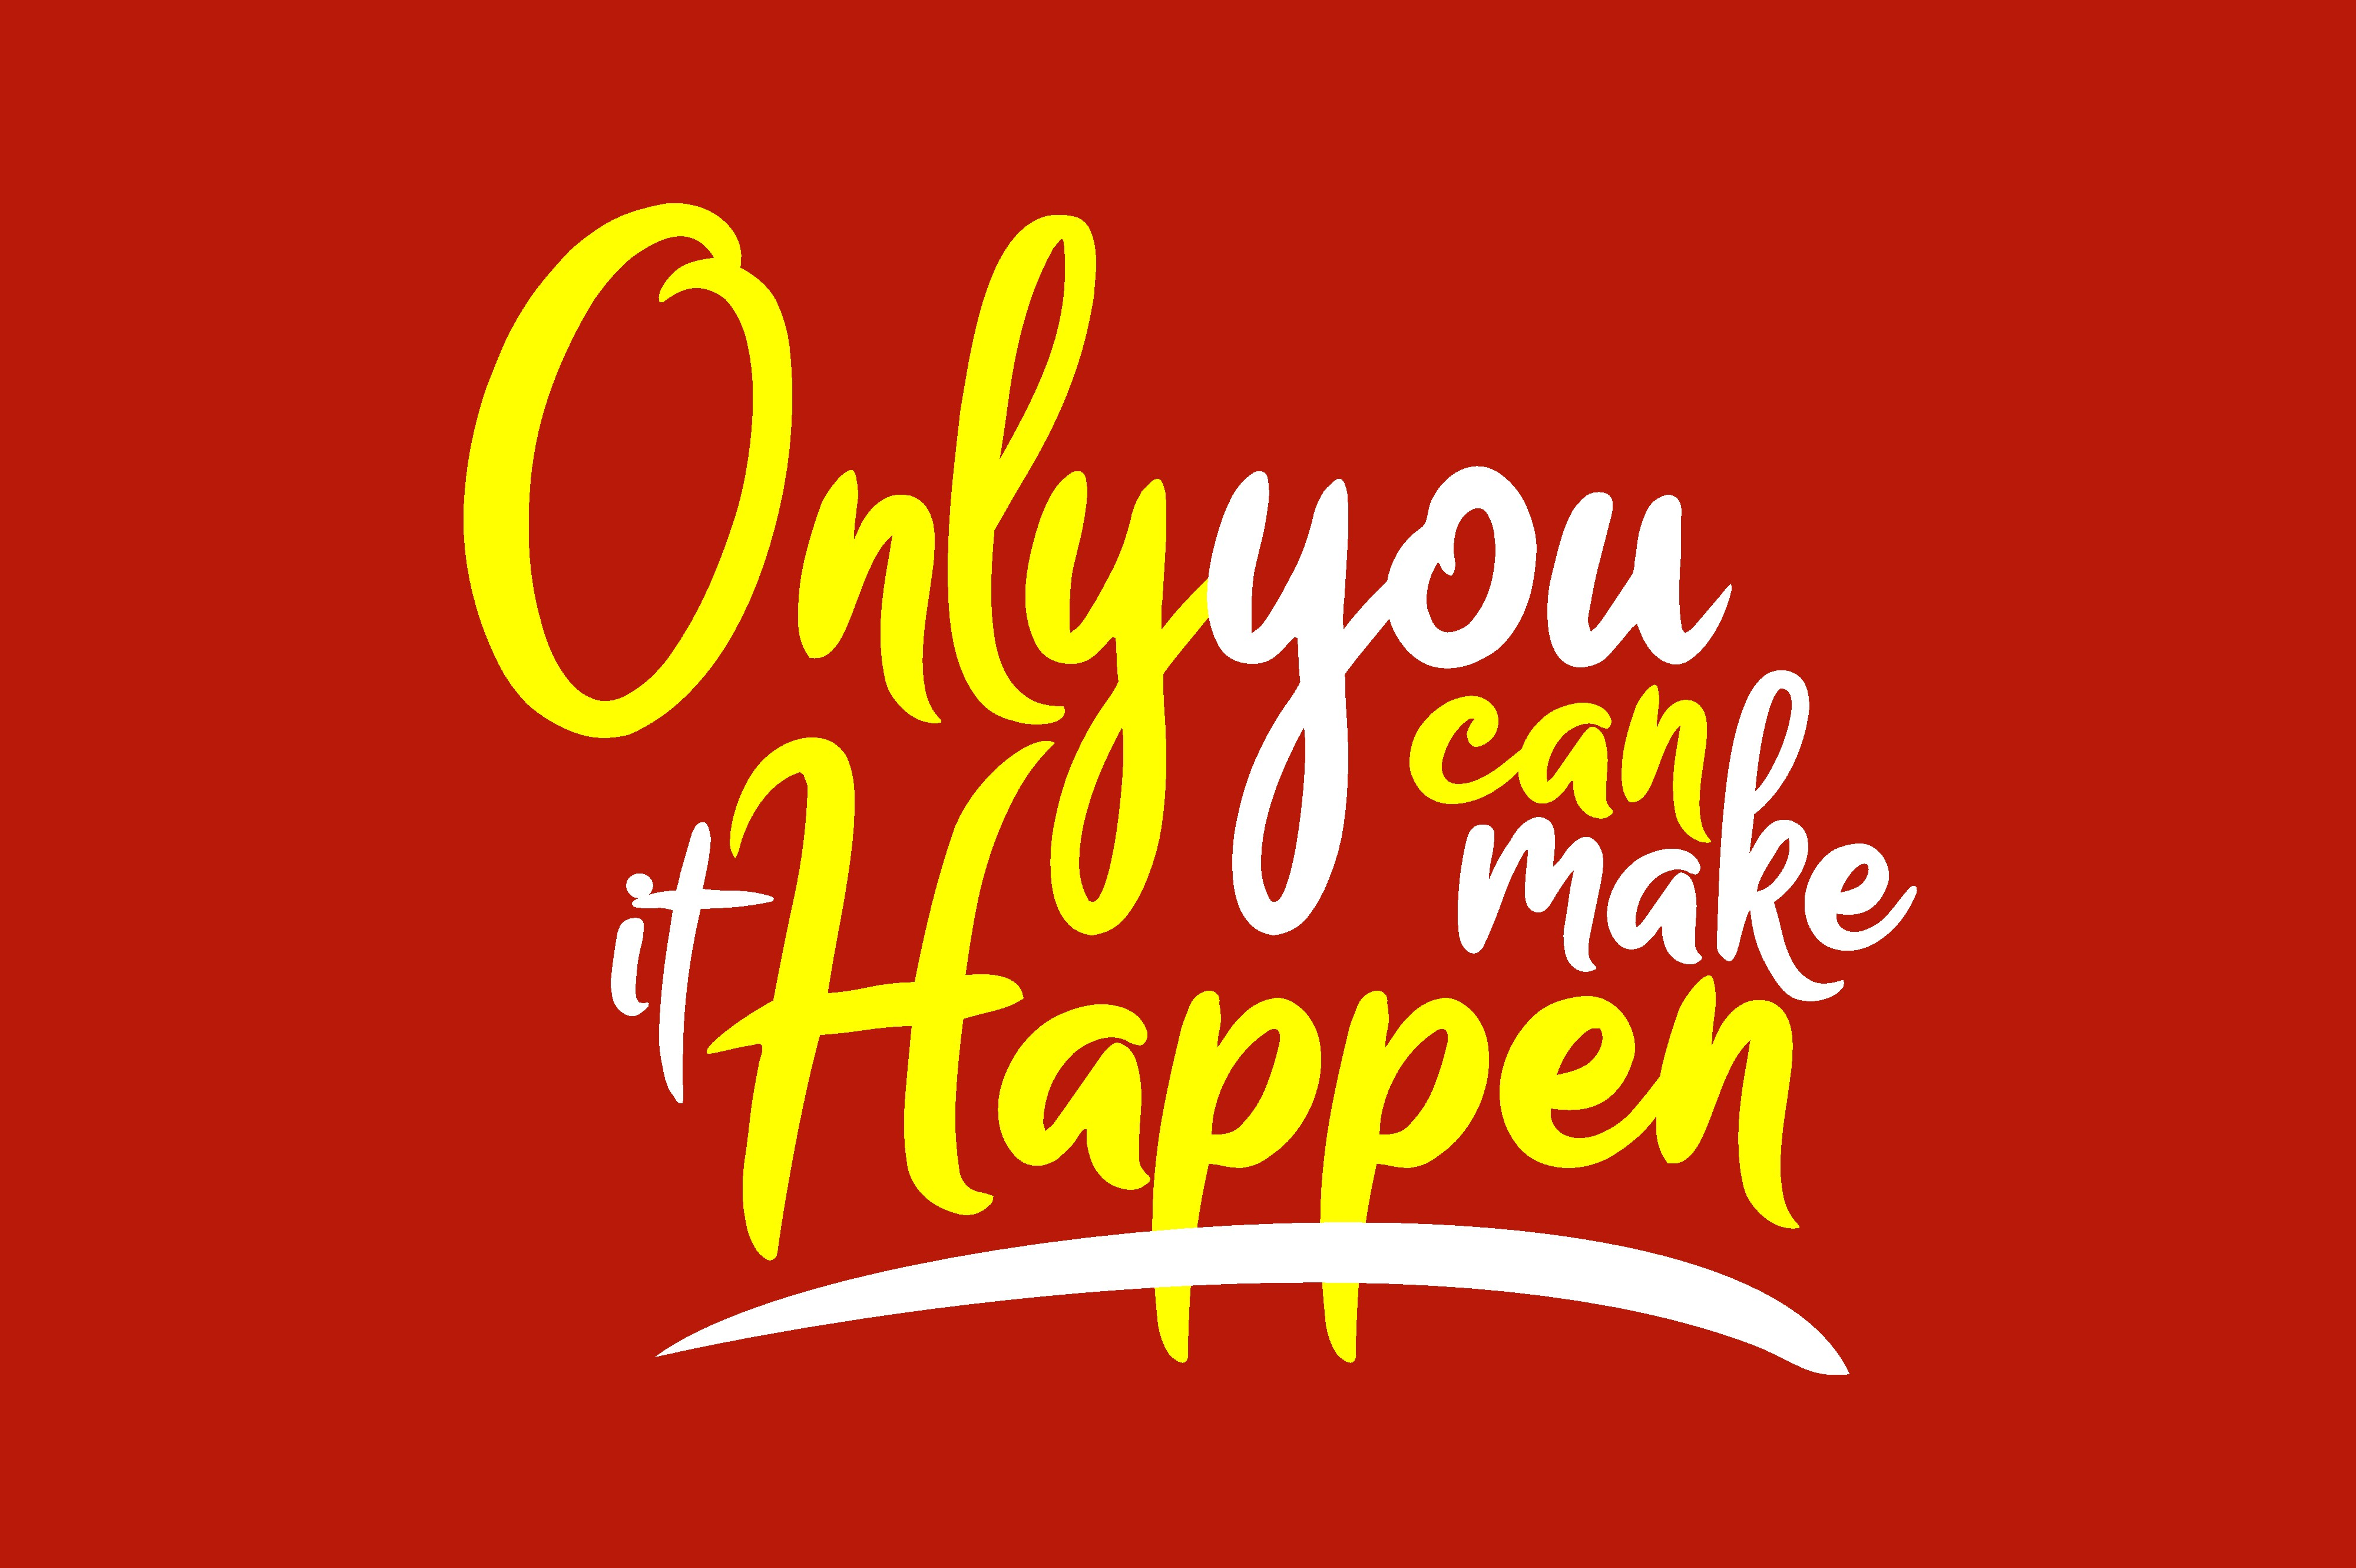 Download Free Only You Can Make It Happen Graphic By Chairul Ma Arif Creative Fabrica for Cricut Explore, Silhouette and other cutting machines.